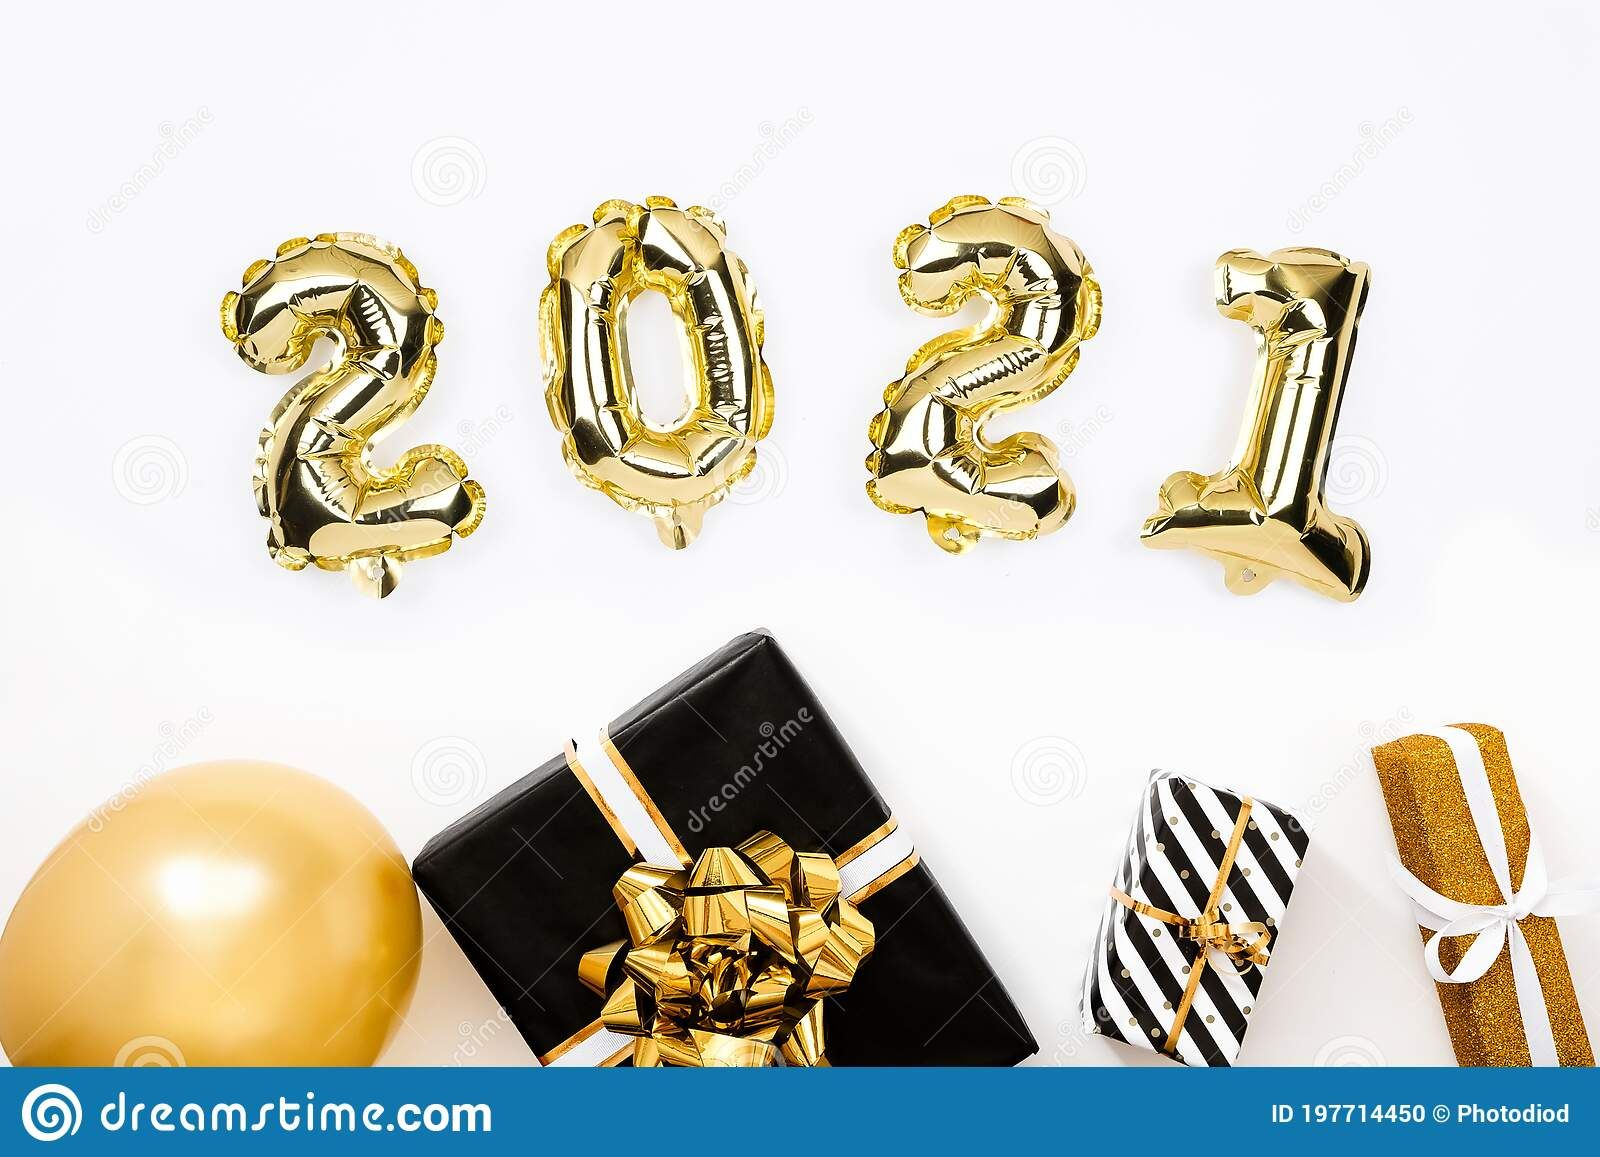 Happy New Year 2021 Celebration Gold Foil Balloons Numeral 2020 On White Background Stock Photo Image O Gold Foil Balloons Foil Balloons Happy New Year 2021 2021 new year balloons and gift